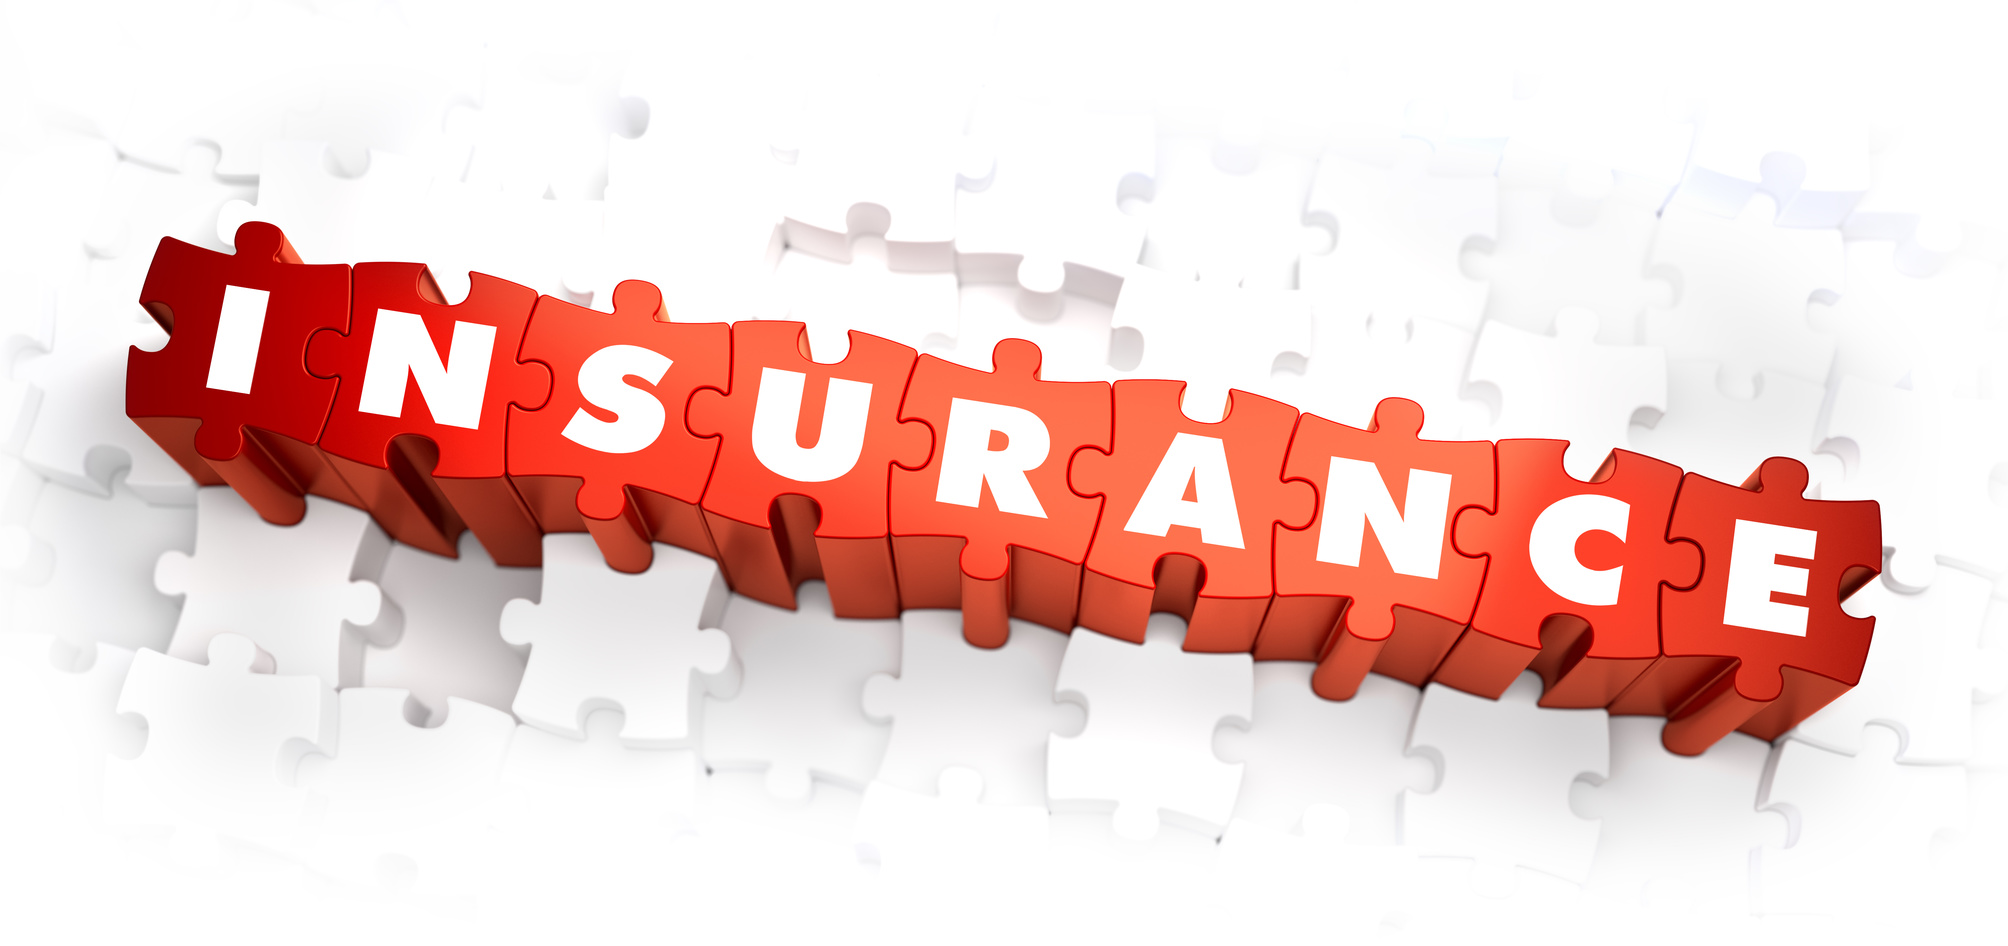 Insurance is a notoriously difficult service to sell